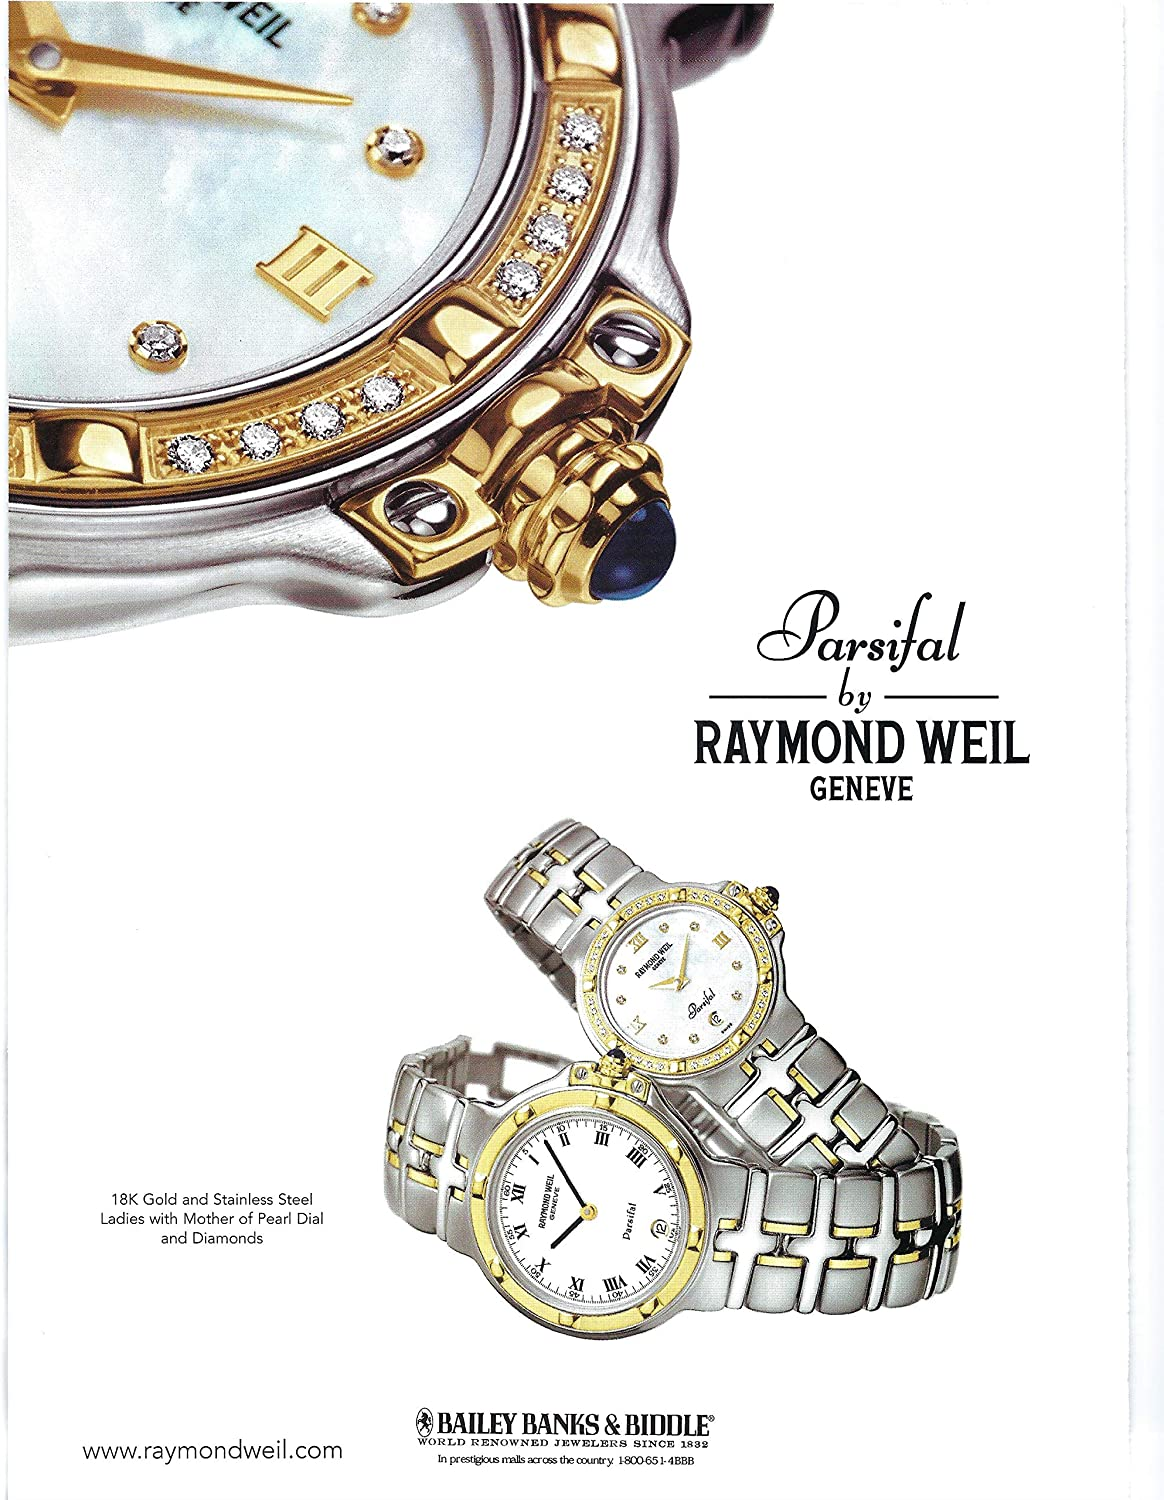 Amazon Com 2000 Vintage Print Ad For Bailey Banks Biddle Parsifal Raymond Weil Geneve Posters Prints